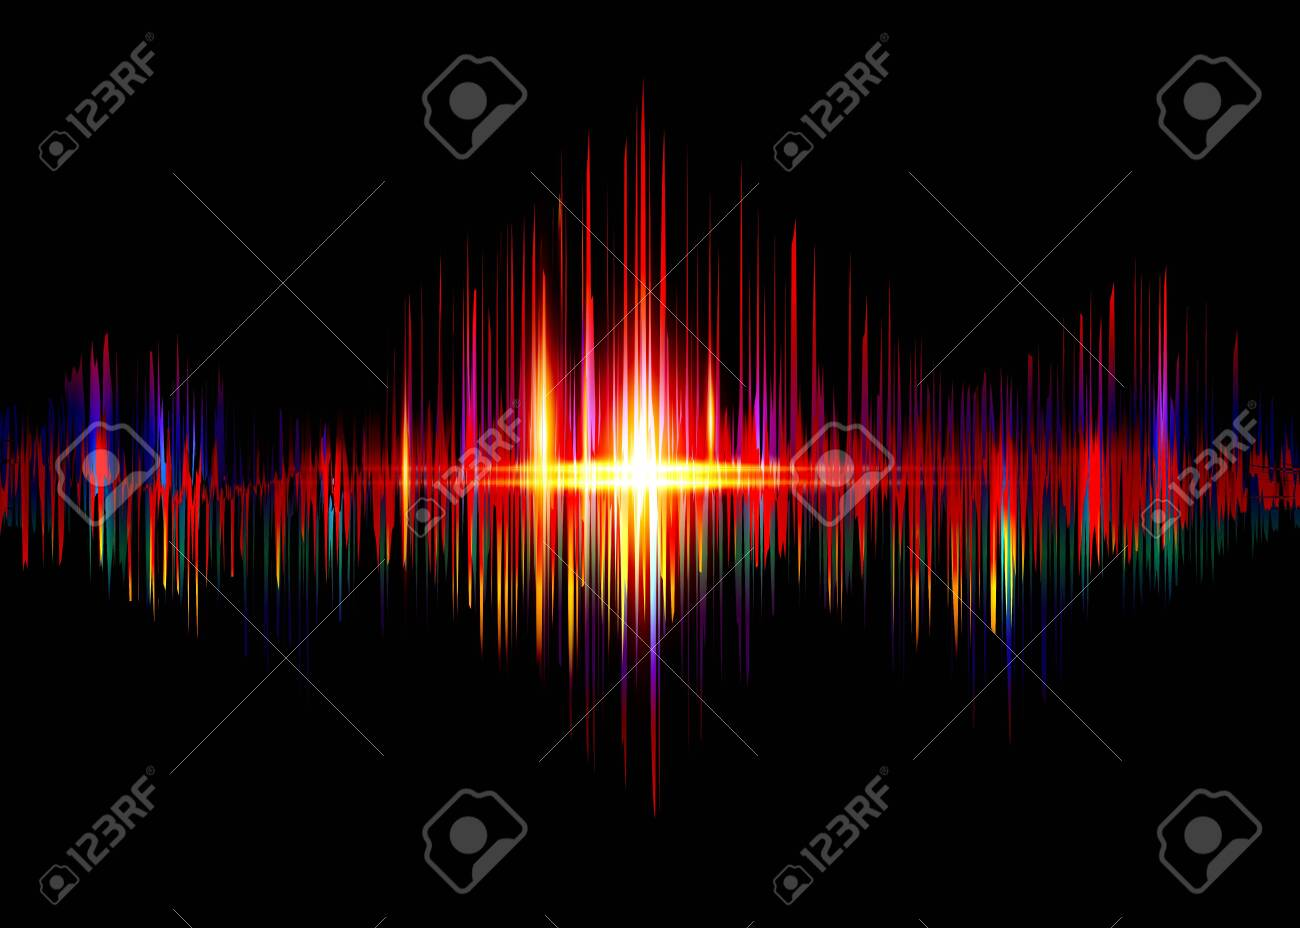 sound wave rhythm background. Spectrum color digital Sound Wave equalizer, technology and earthquake wave concept, design for music industry. Vector isolated on black - 145538934